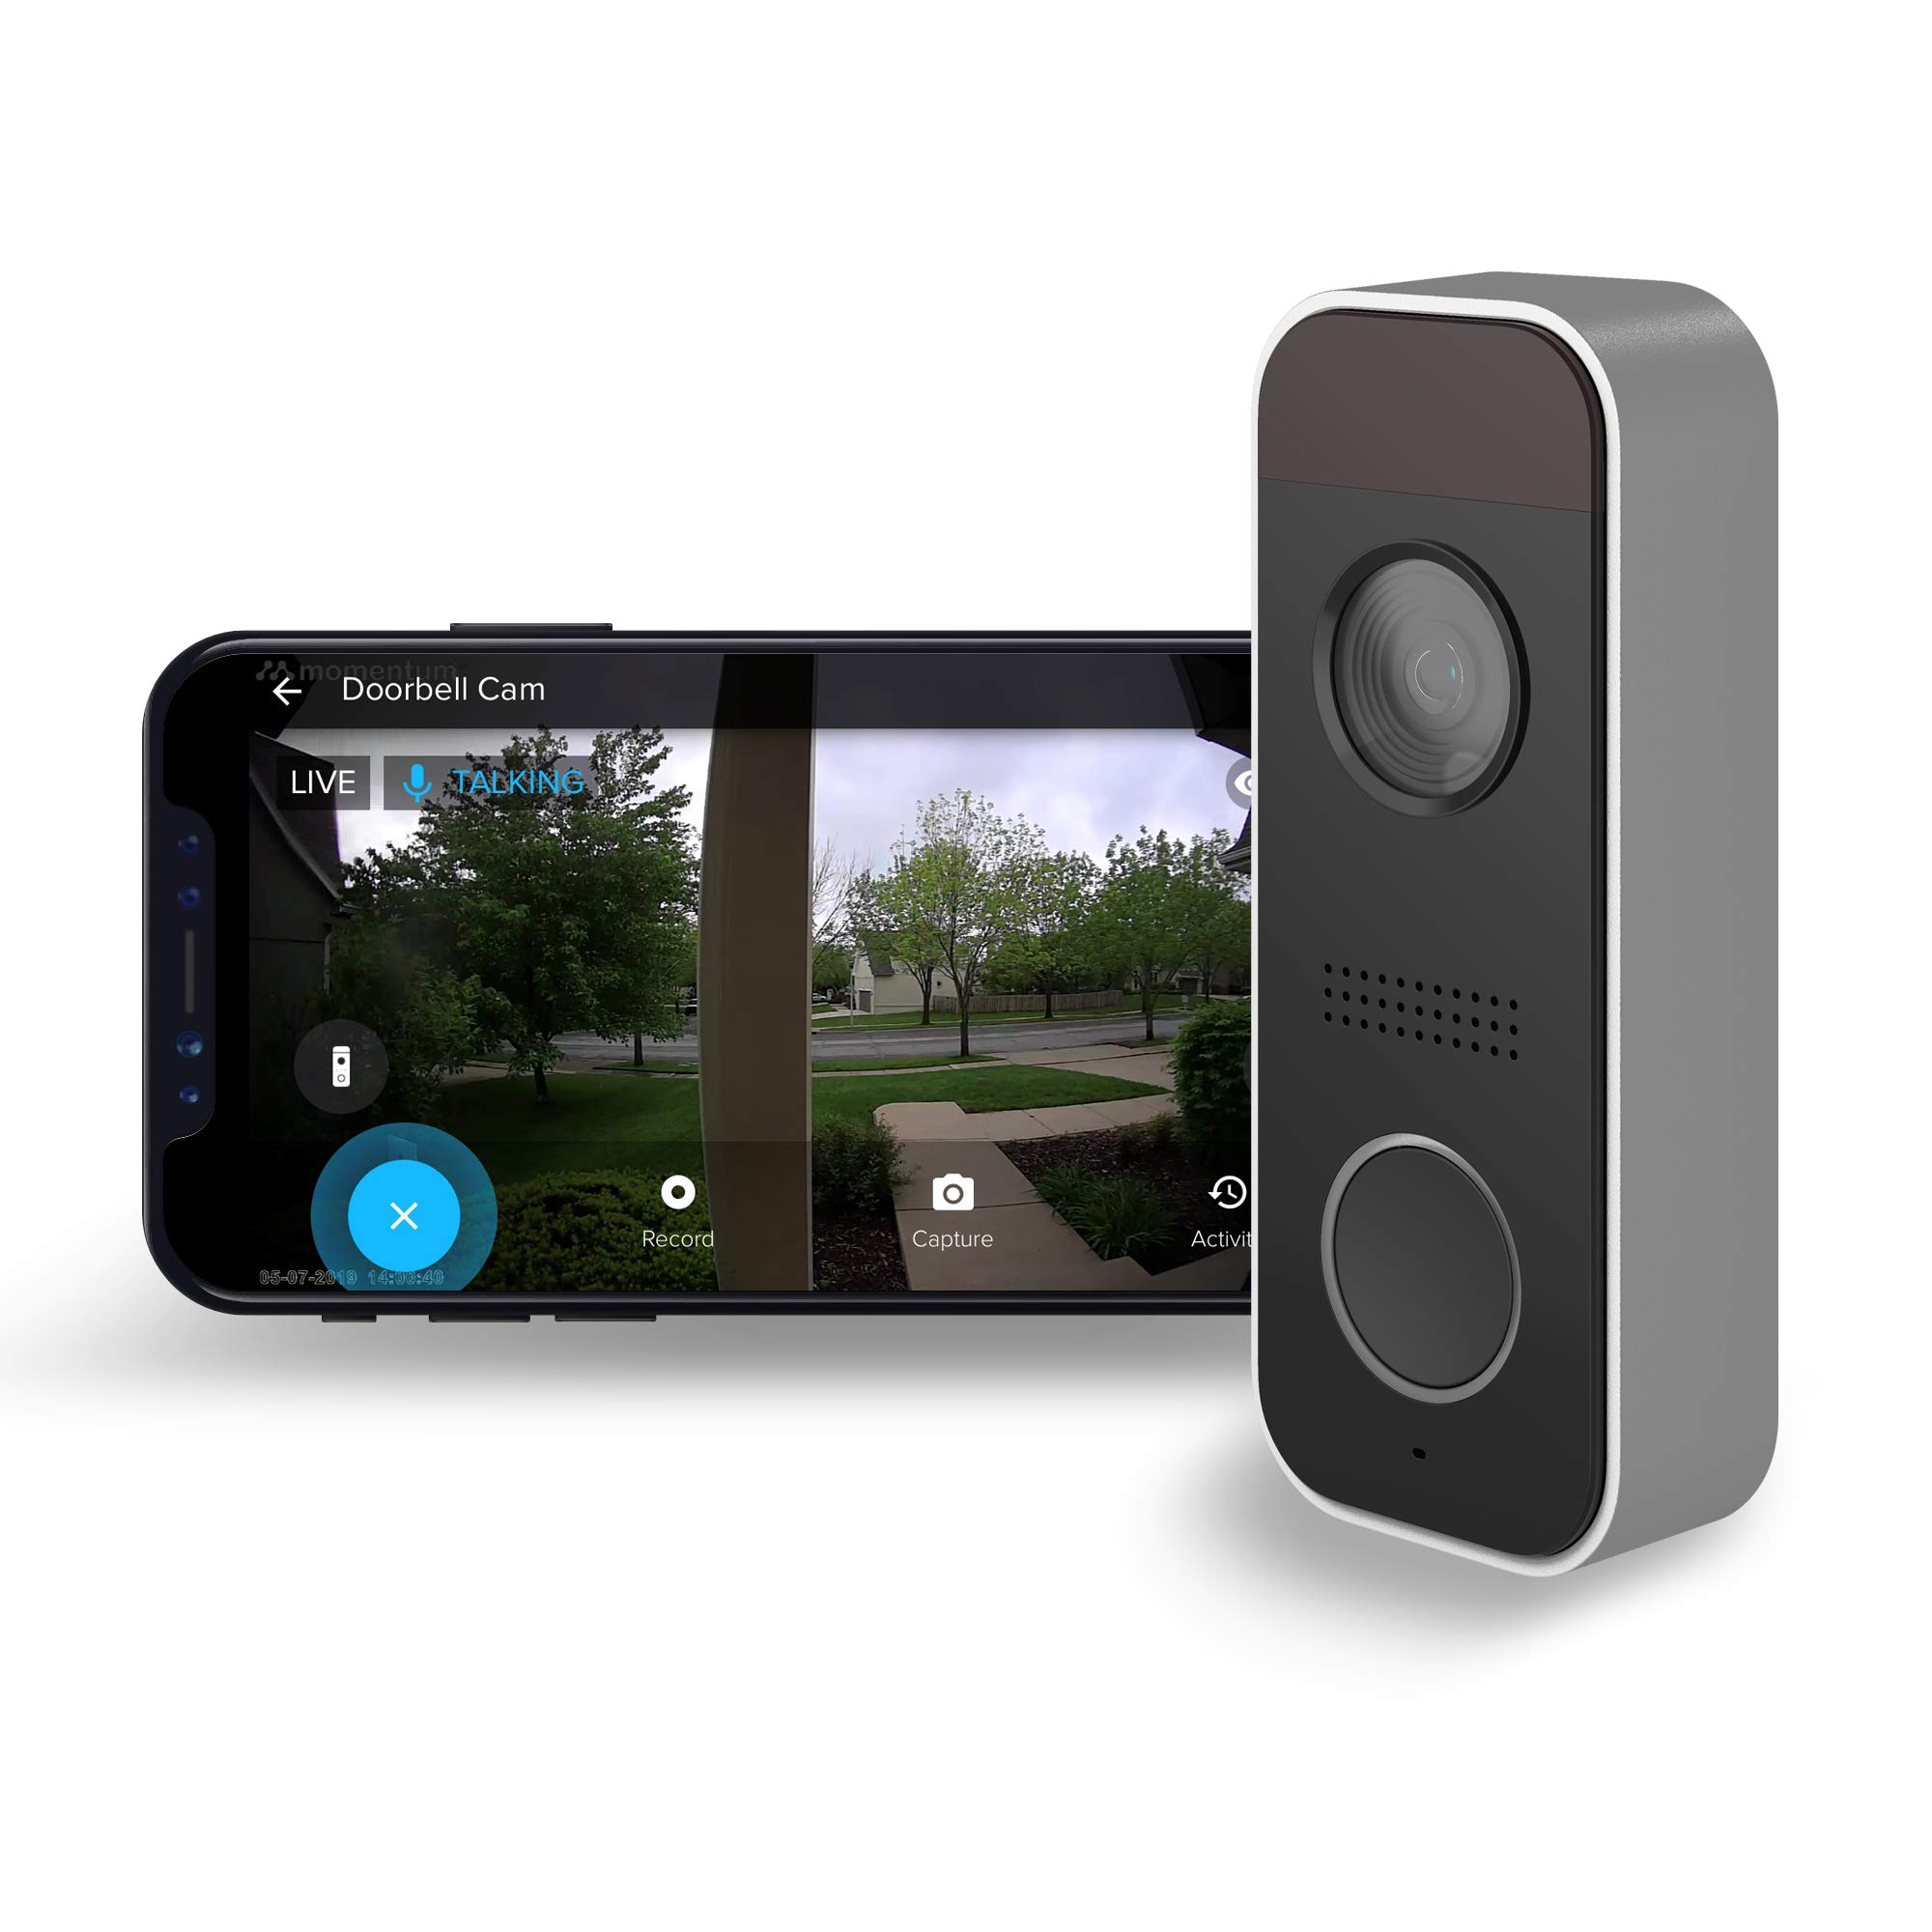 Momentum Knok Smart Video Doorbell for Home with Package Delivery Alerts   1080p Real-Time Wireless Video, Motion Zone Creation, HD Night Vision, Two-Way Talk, Built-In Siren, Free Cloud Storage